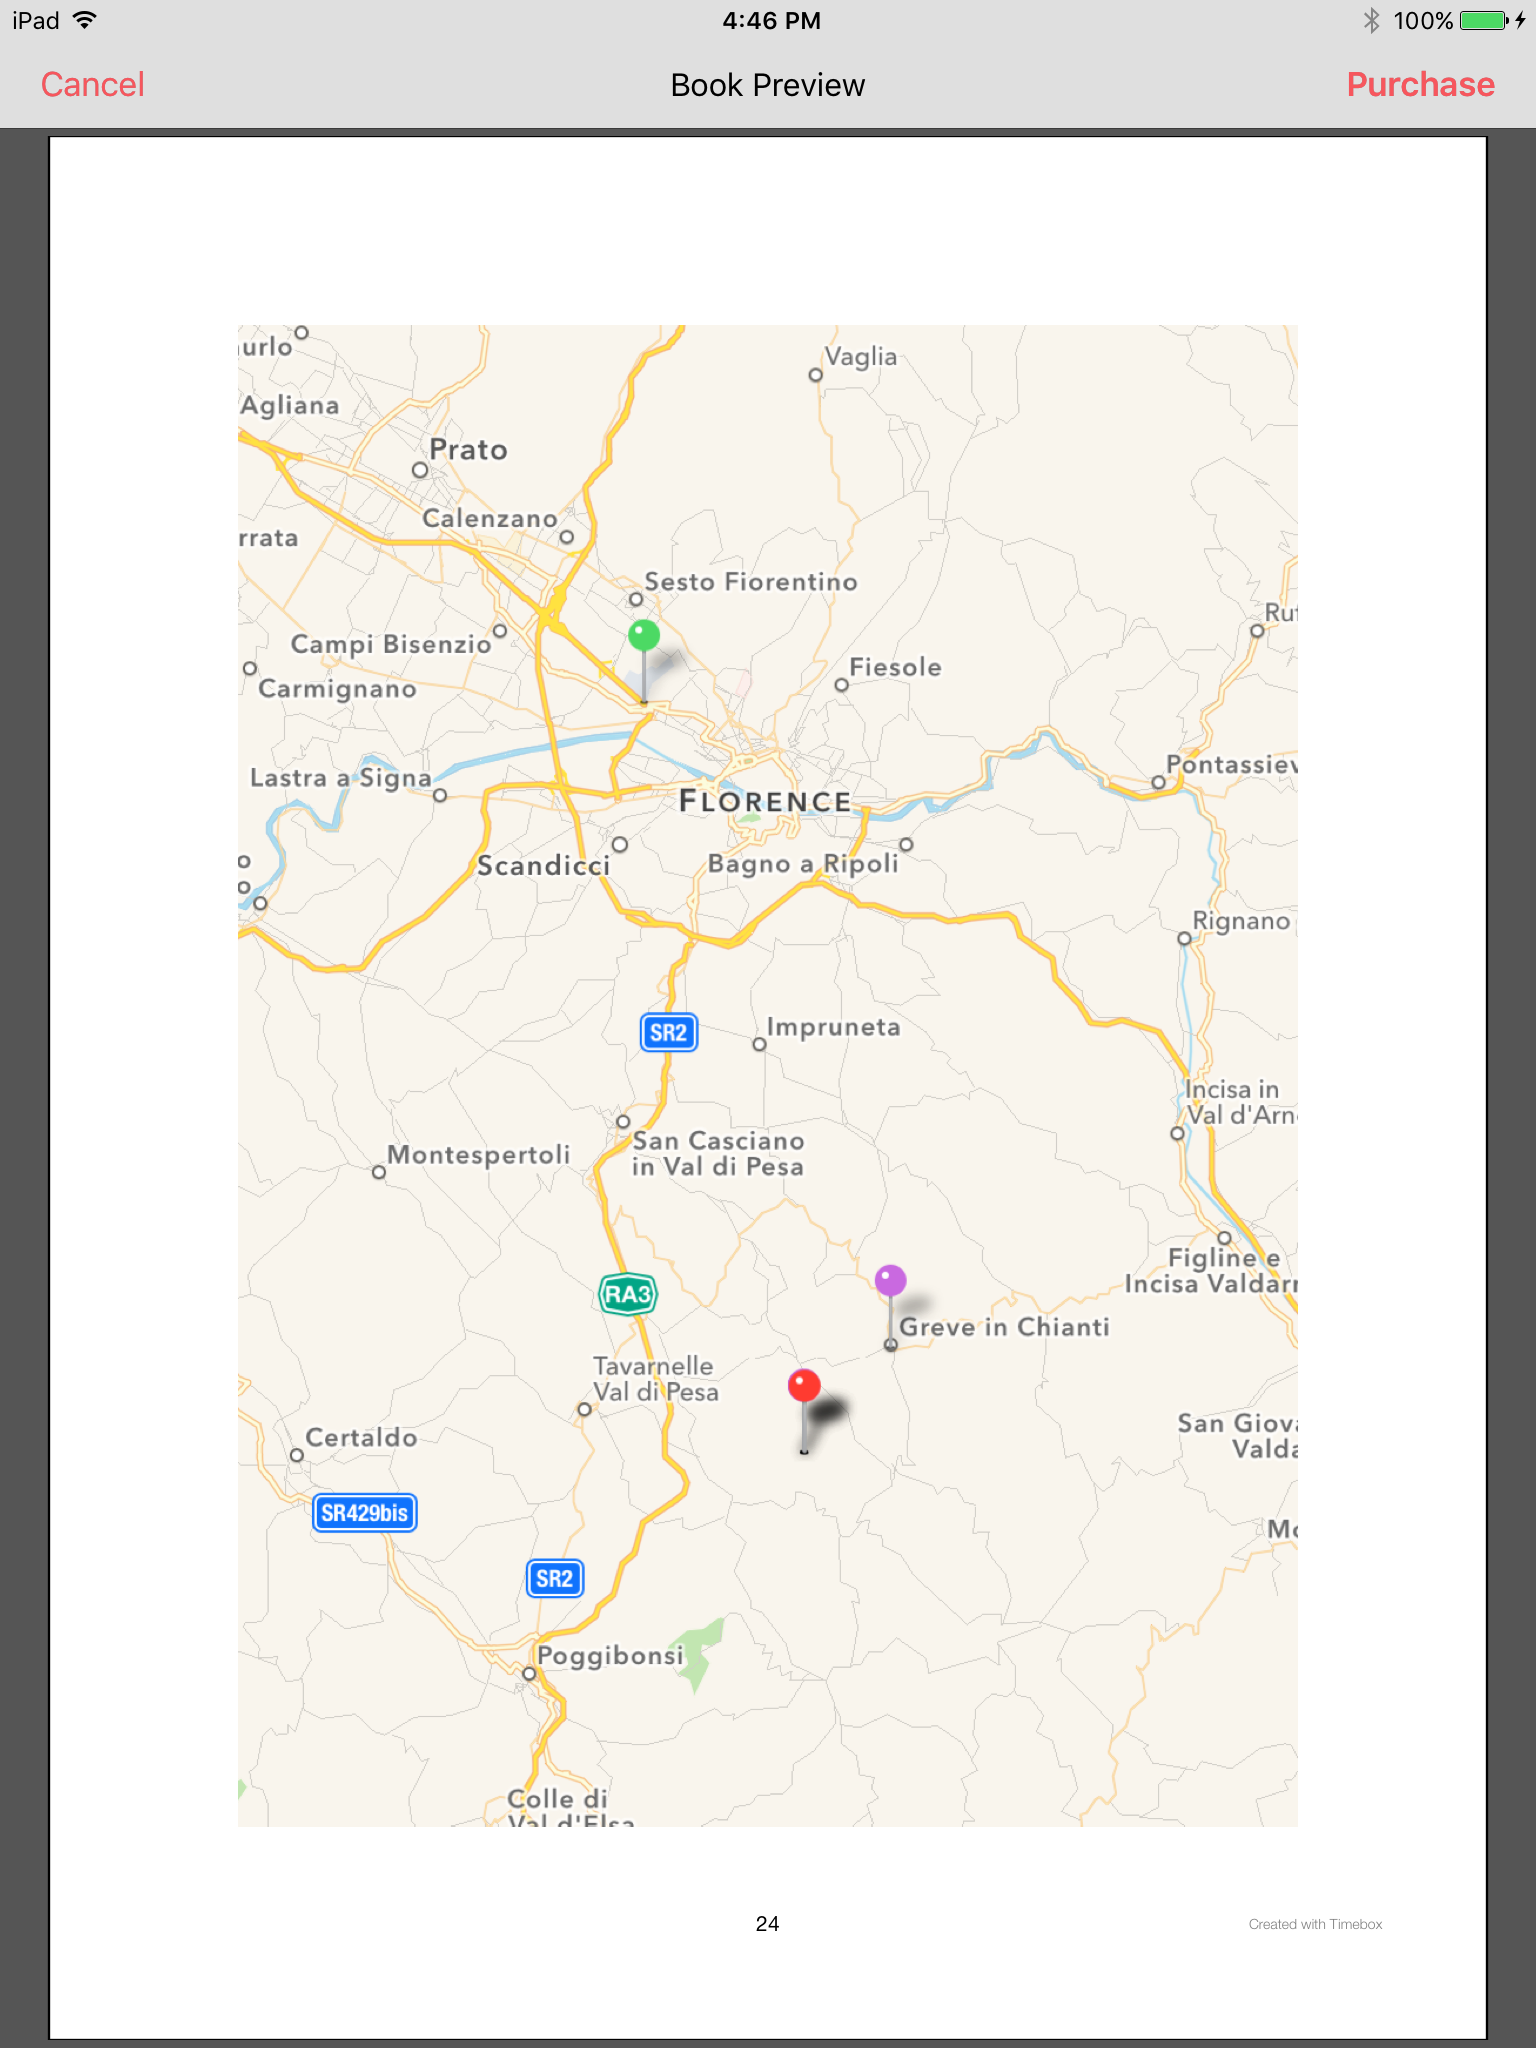 When you print your stories as a hardcover book, PDF ebook,or on your own home printer, Timebox adds a map on the last page with a summary of the locations of all of your stories.